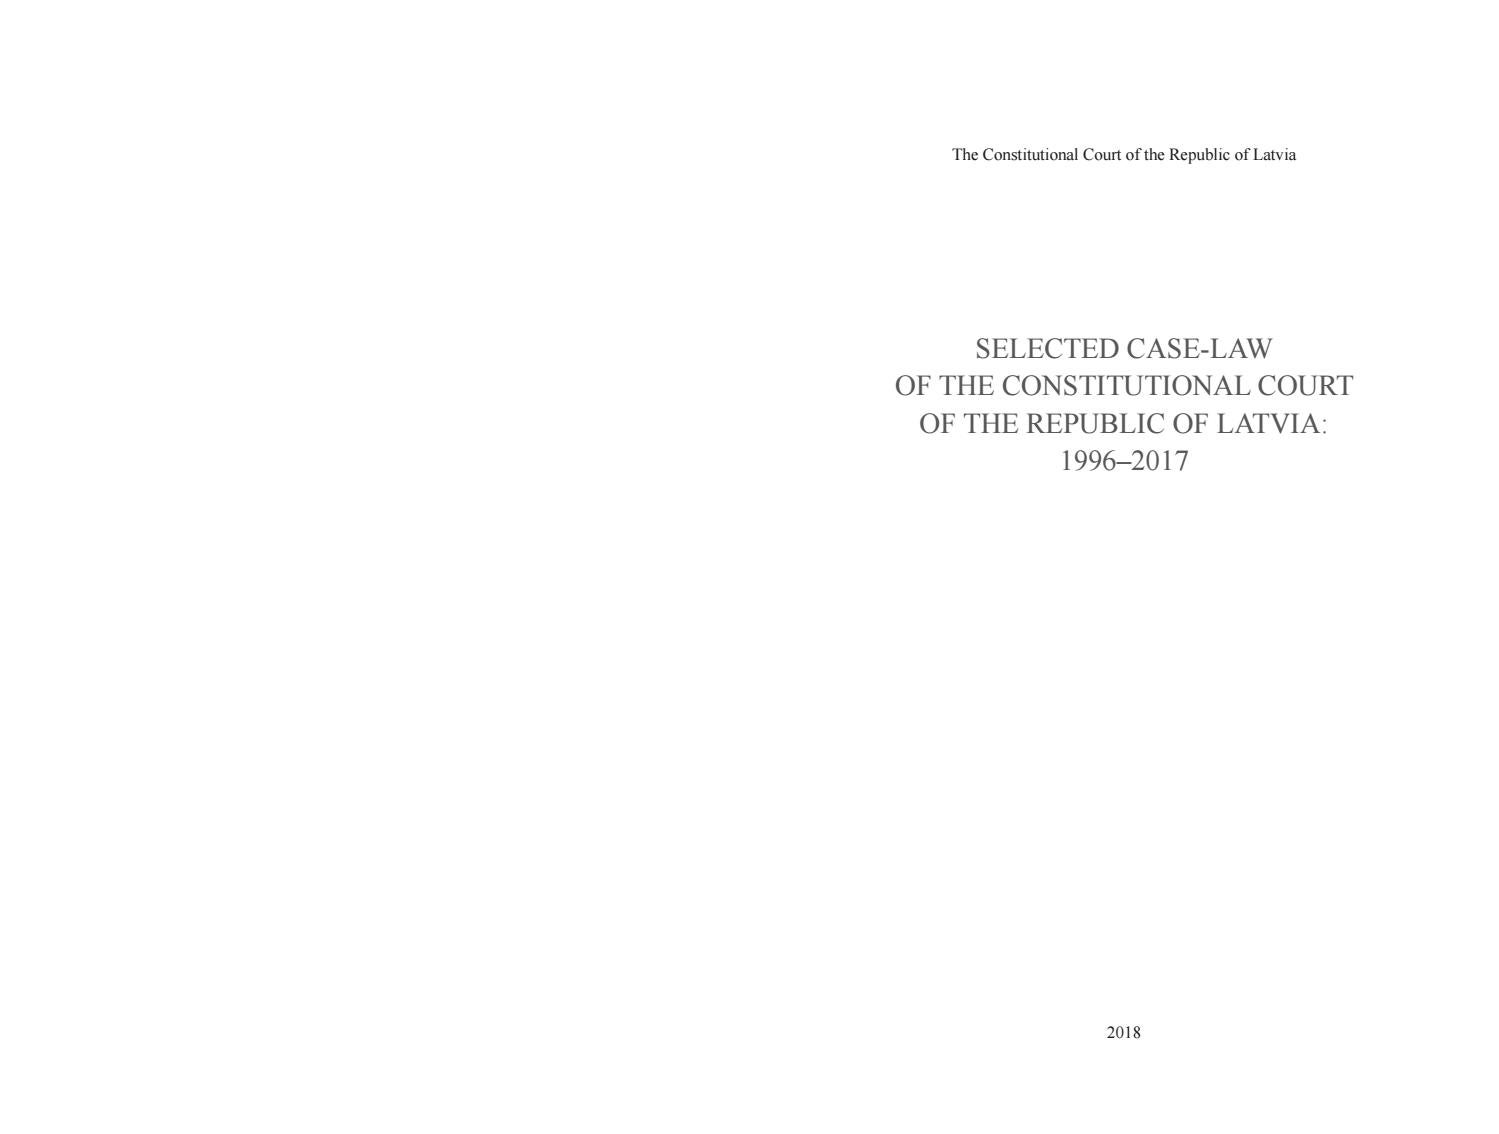 SELECTED CASE-LAW OF THE CONSTITUTIONAL COURT OF THE